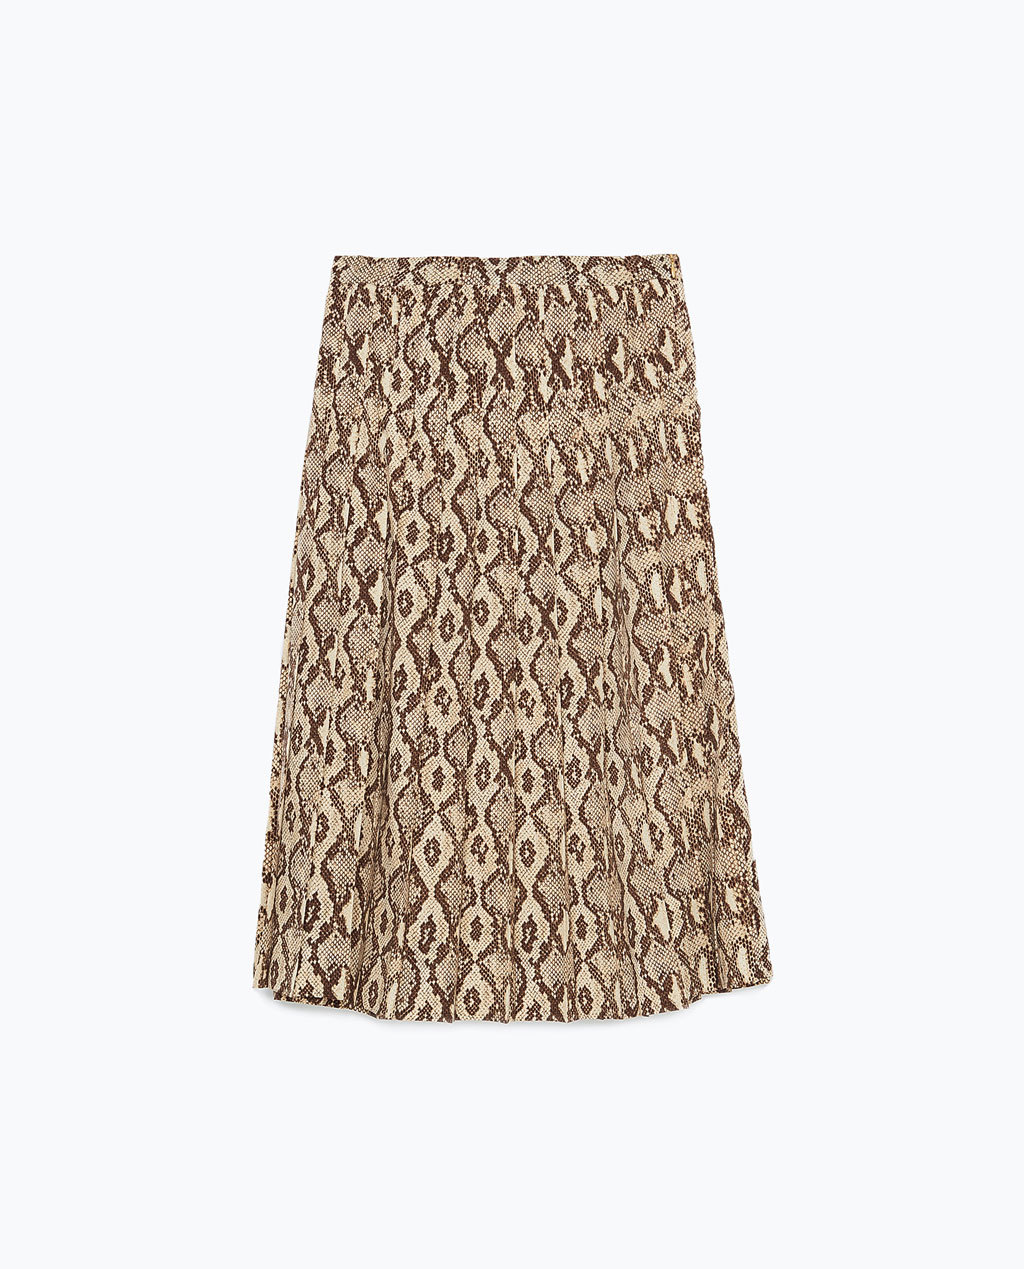 Midi Skirt - length: below the knee; fit: loose/voluminous; style: pleated; waist: mid/regular rise; predominant colour: stone; occasions: casual, creative work; pattern type: fabric; pattern: patterned/print; texture group: woven light midweight; season: s/s 2015; pattern size: standard (bottom); wardrobe: highlight